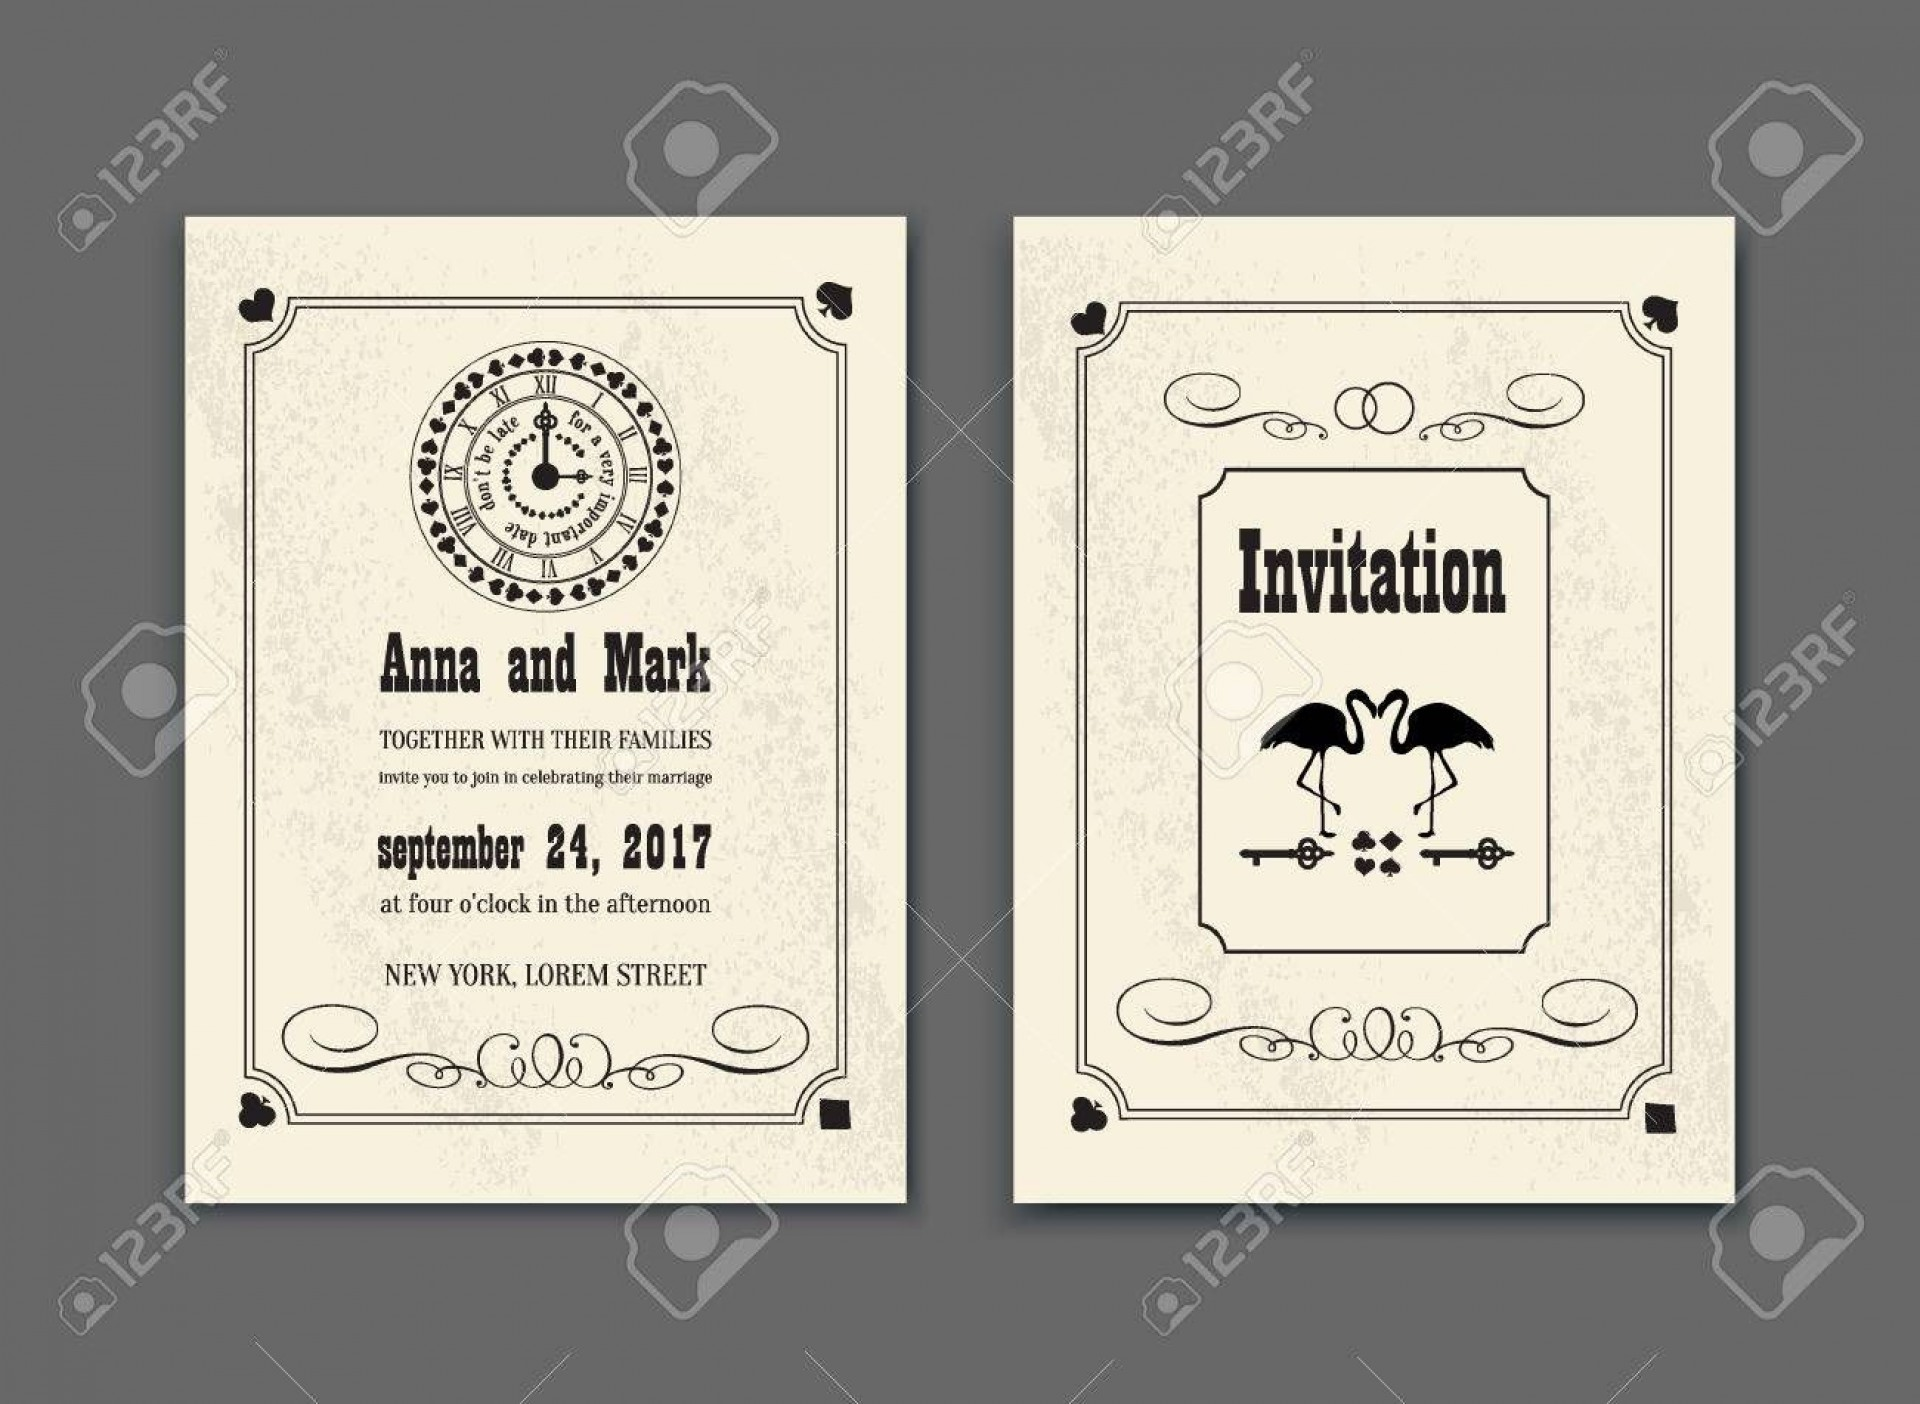 004 Unique Alice In Wonderland Party Template Highest Clarity  Templates Invitation Free1920